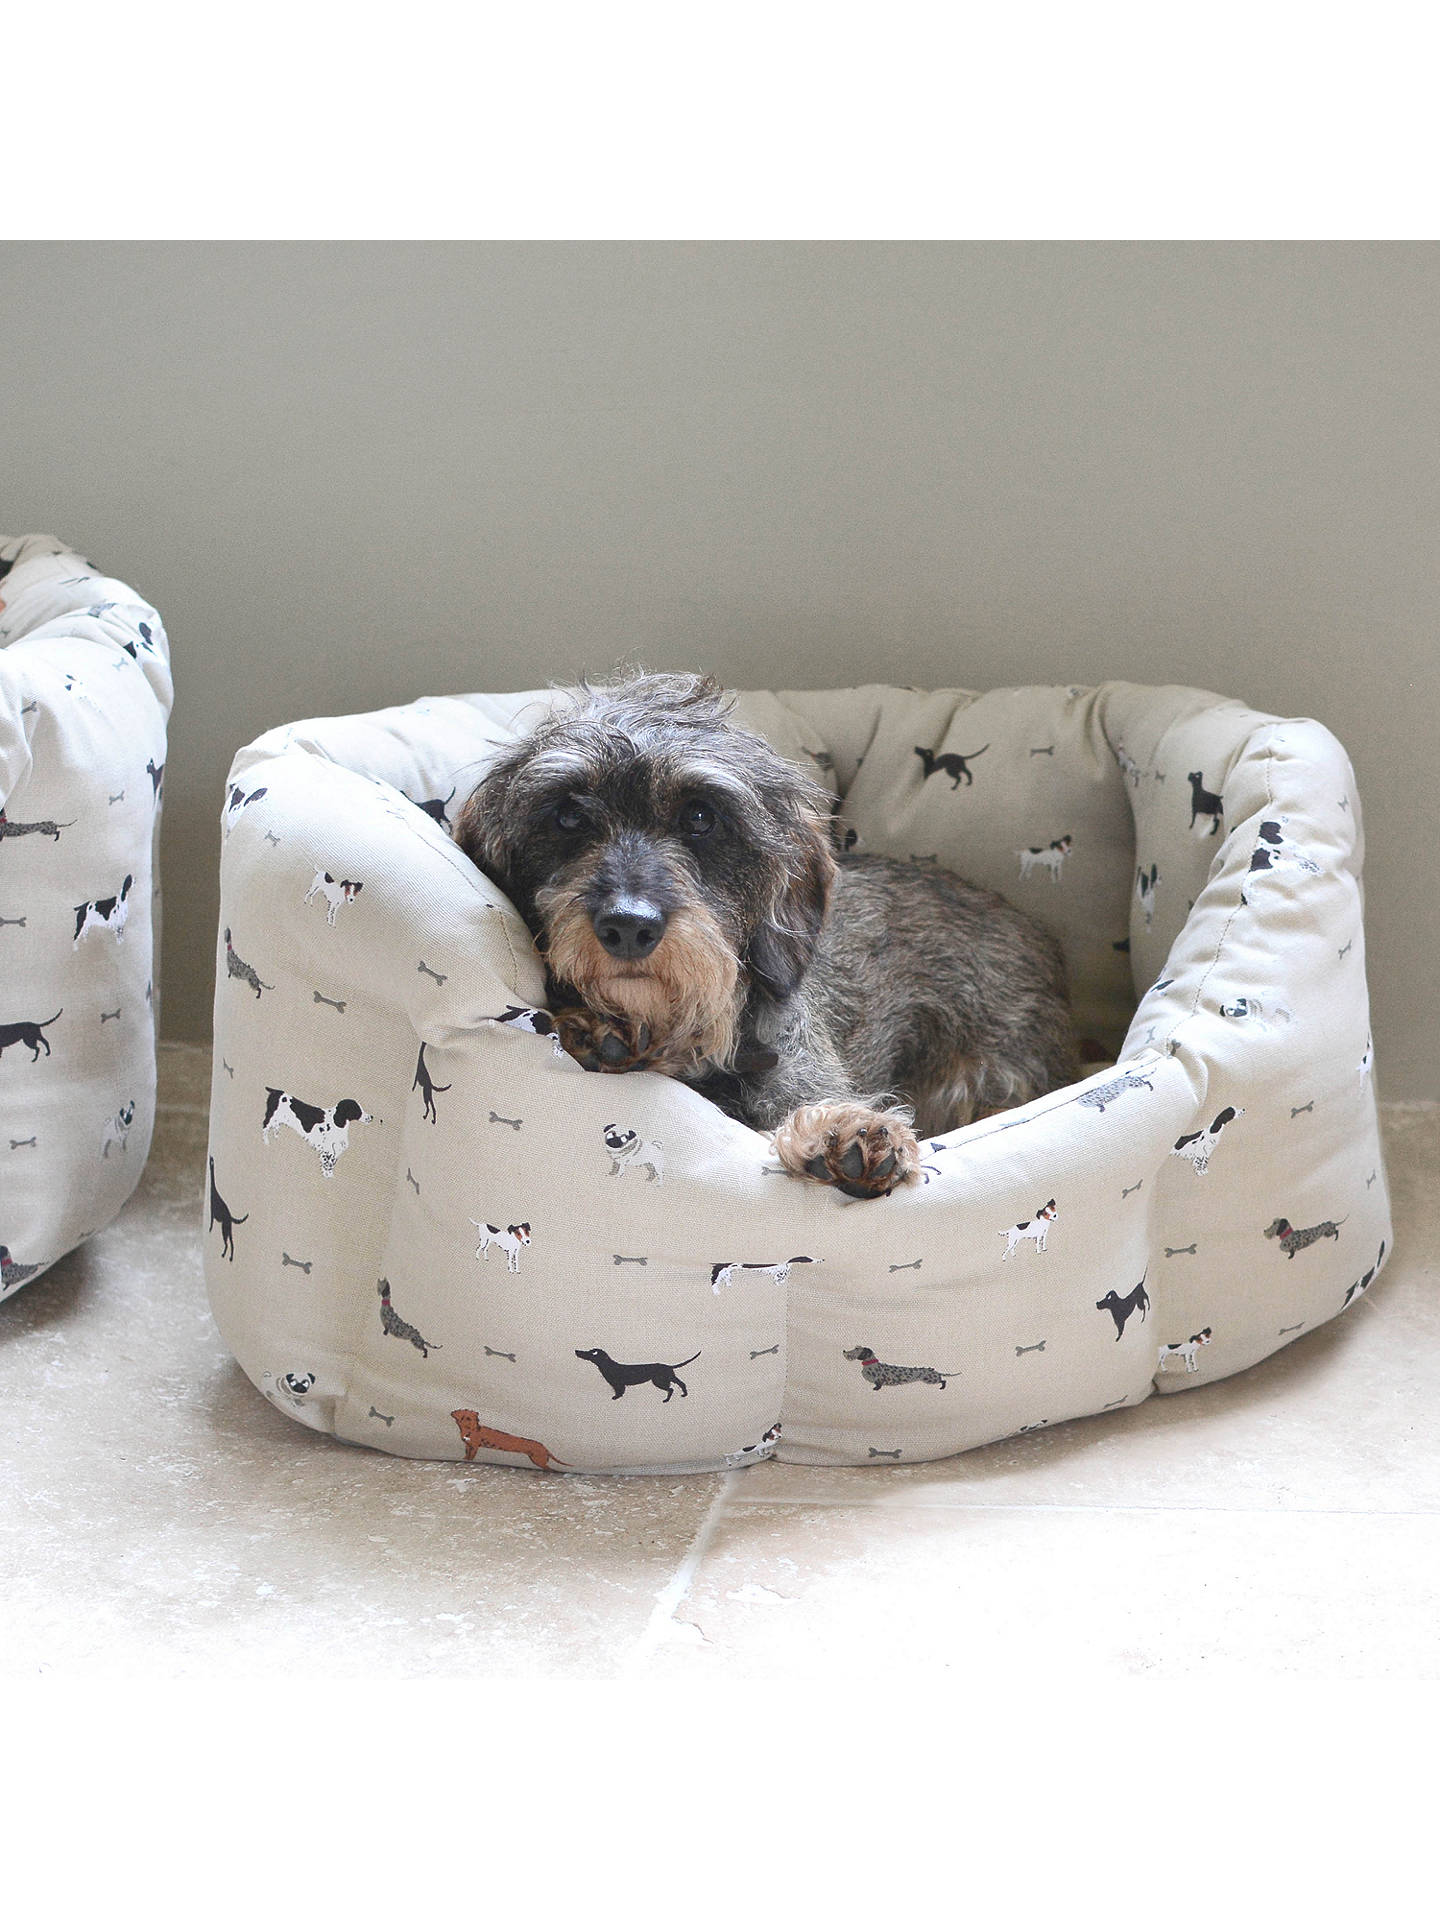 BuySophie Allport Woof Dog Bed, Medium Online at johnlewis.com